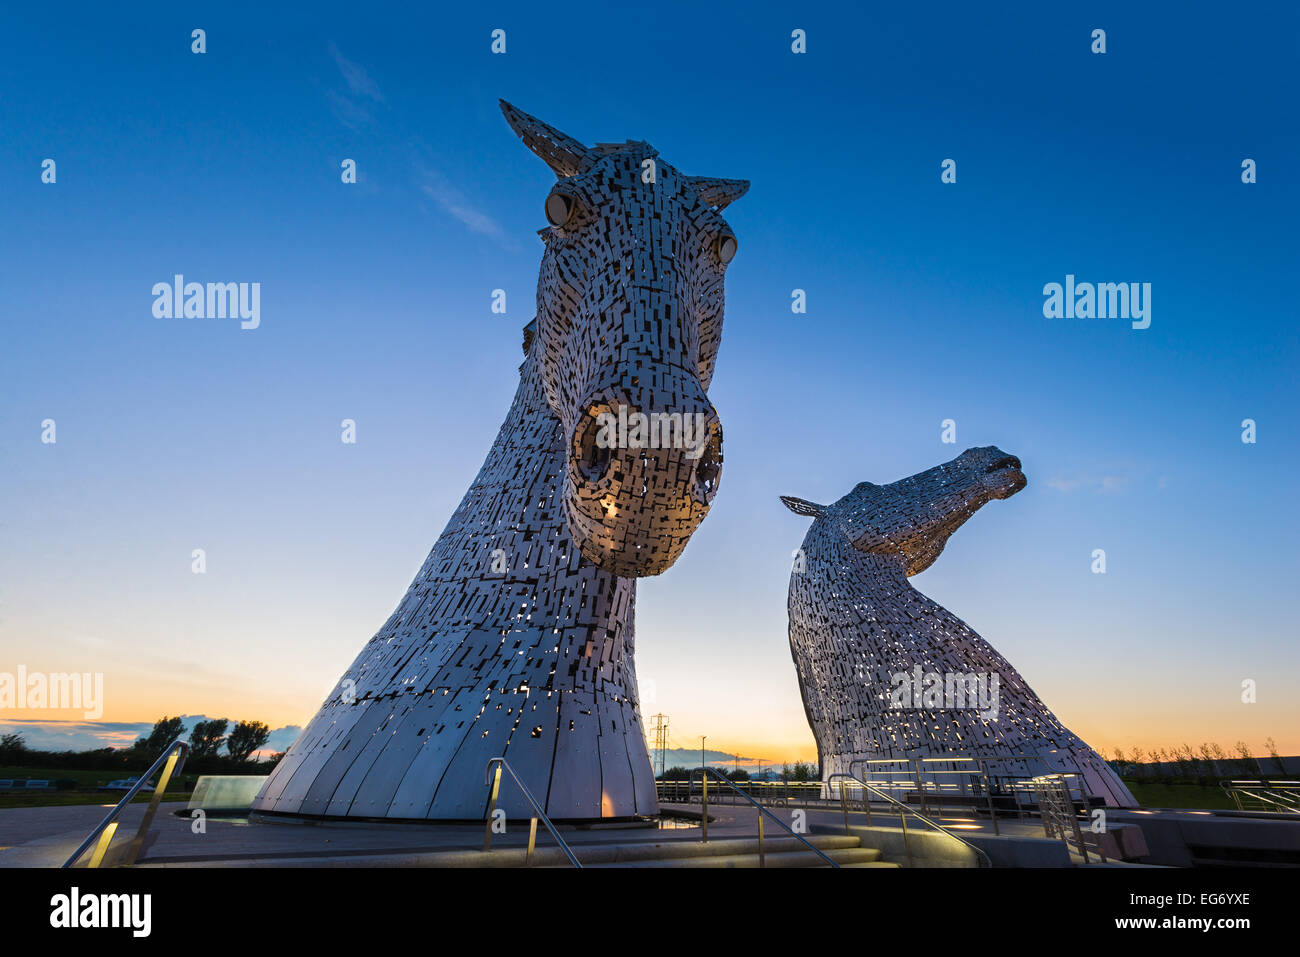 The Kelpies Equine Sculpture by the Forth & Clyde Canal, Falkirk, Scotland, UK. - Stock Image